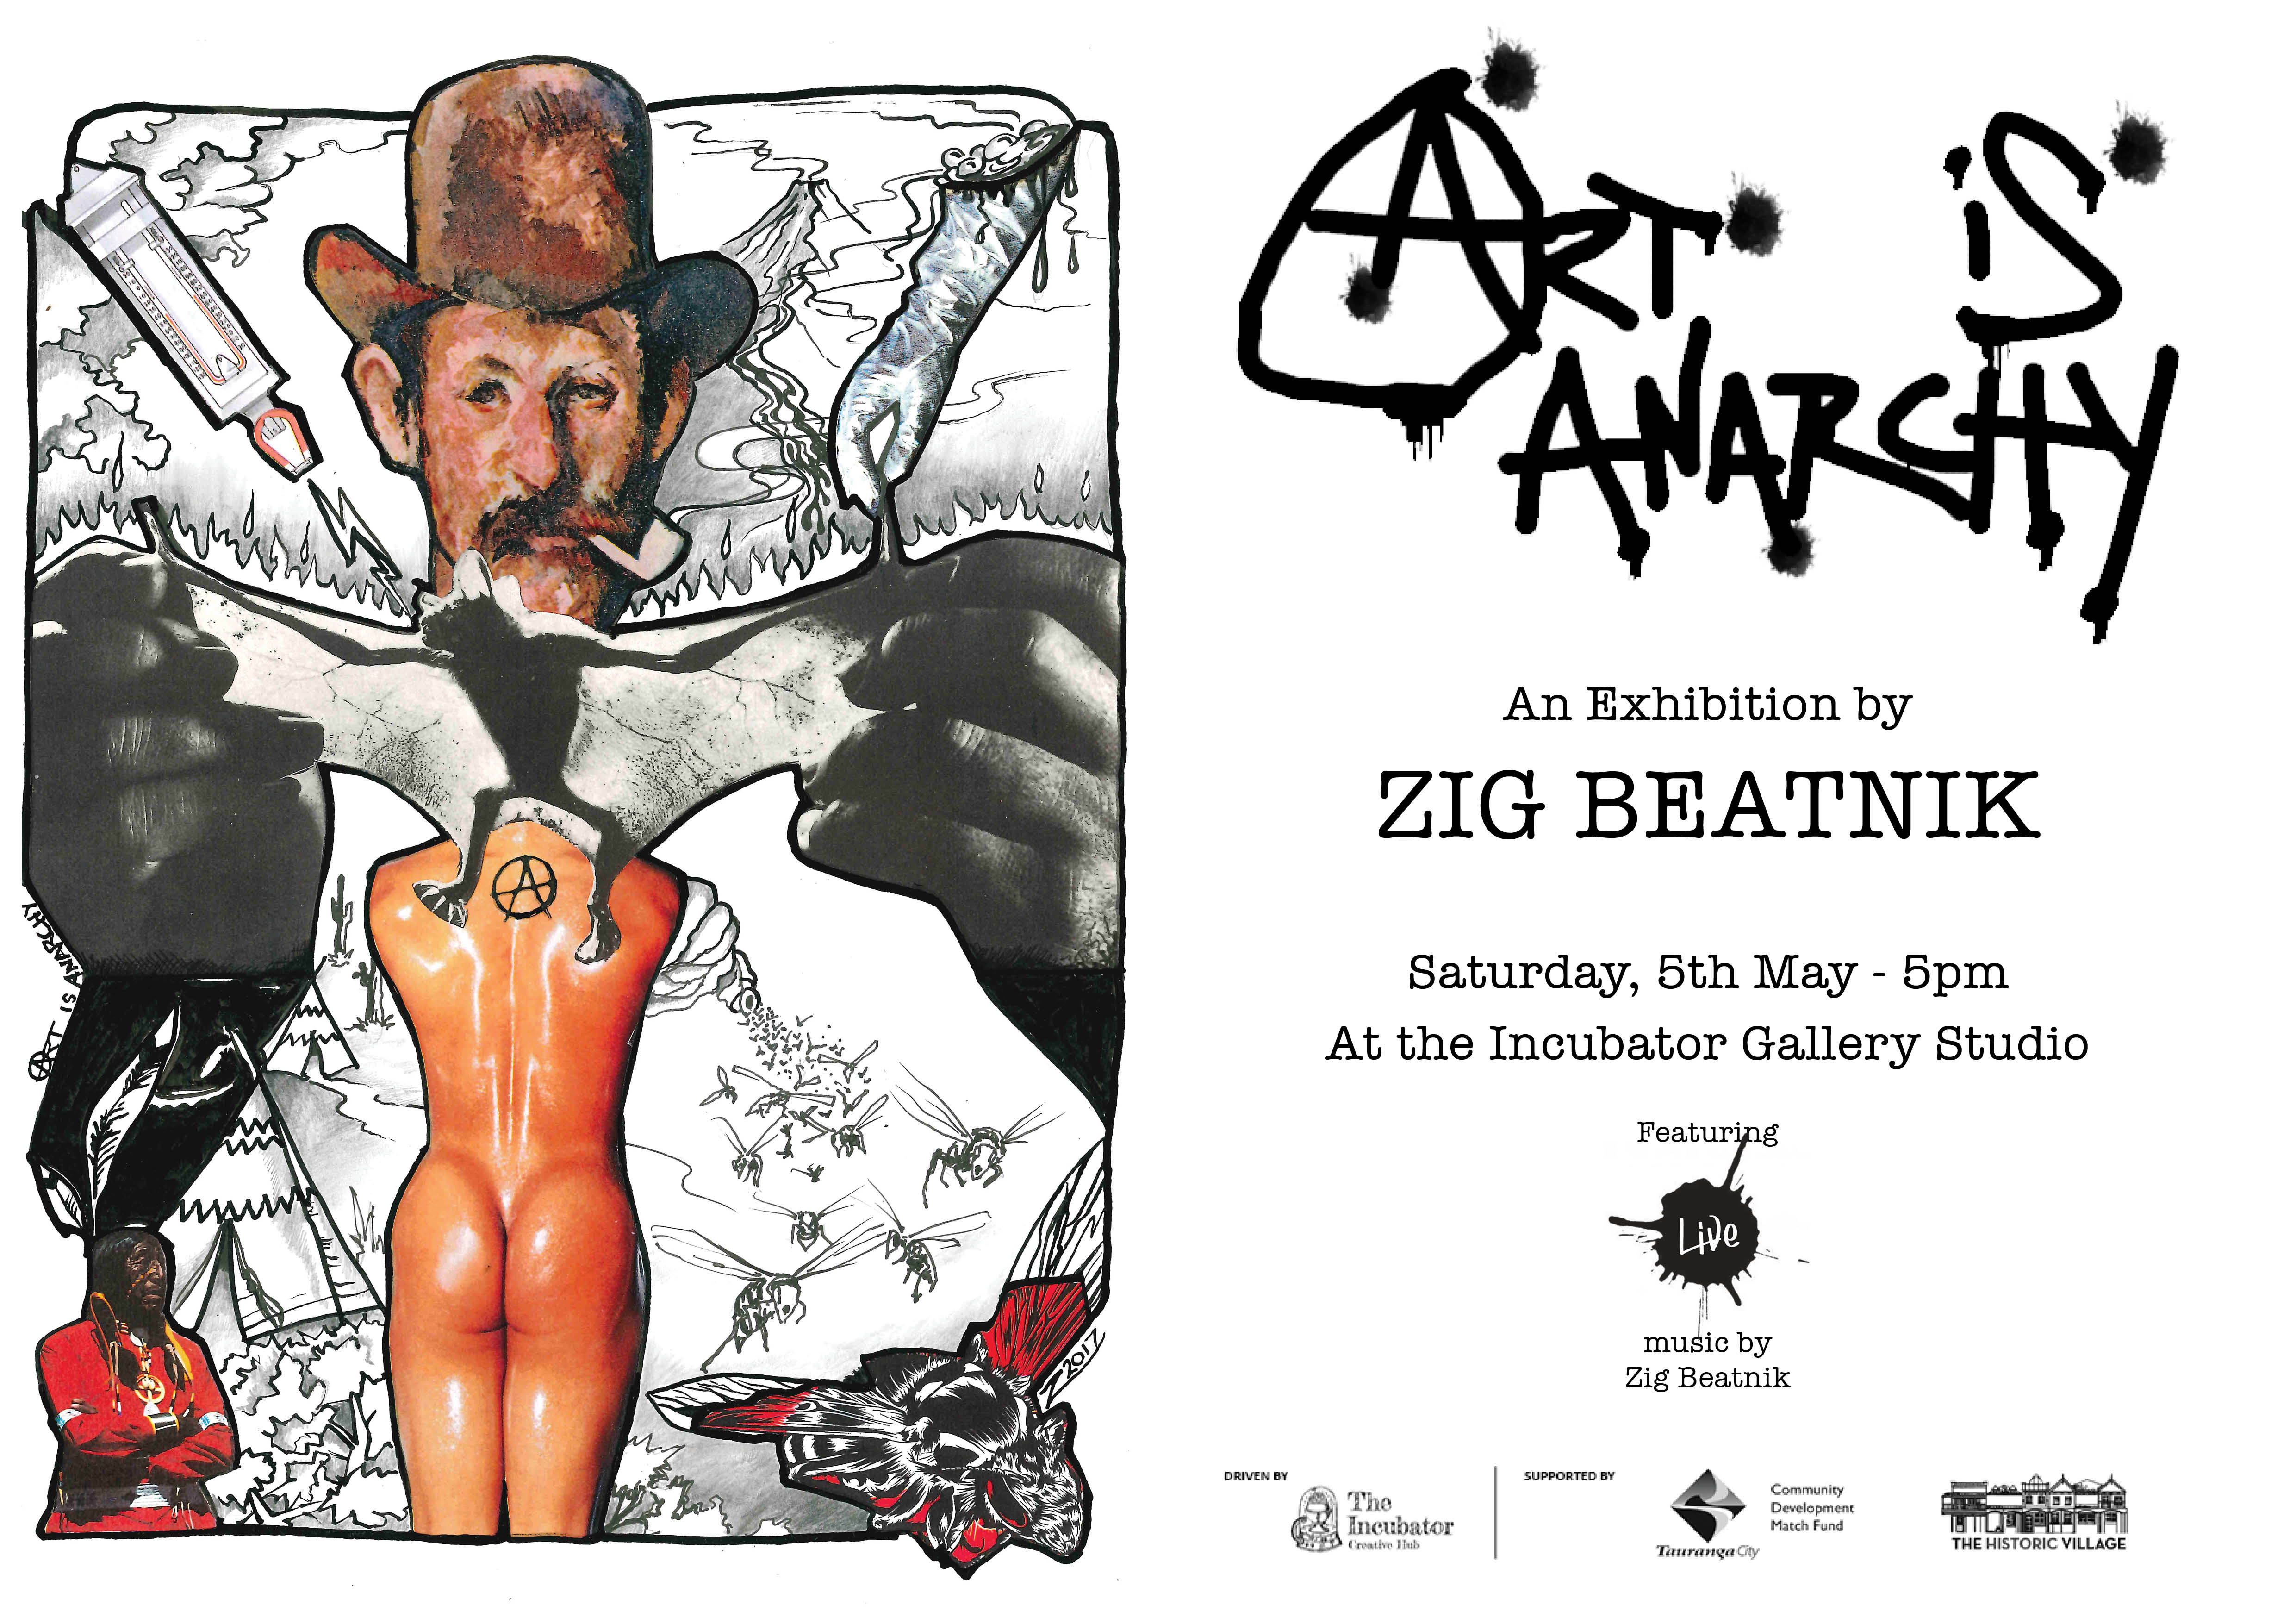 Art-is-anarchy-Zig-beatnik_APRIL5